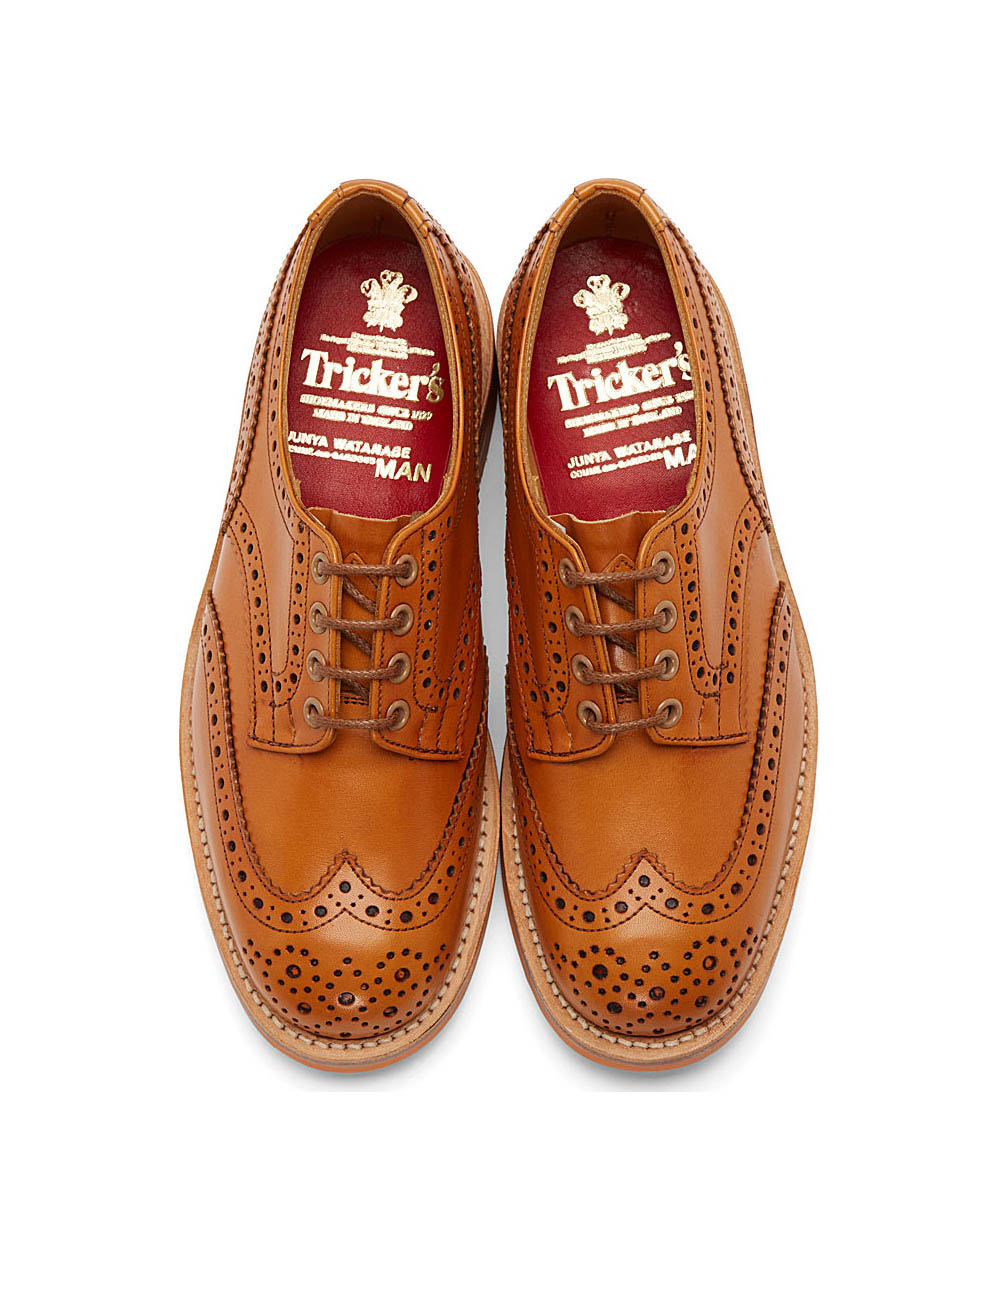 Beige Shortwing Brogue, Tricker's x Junya Watanabe British Shoes